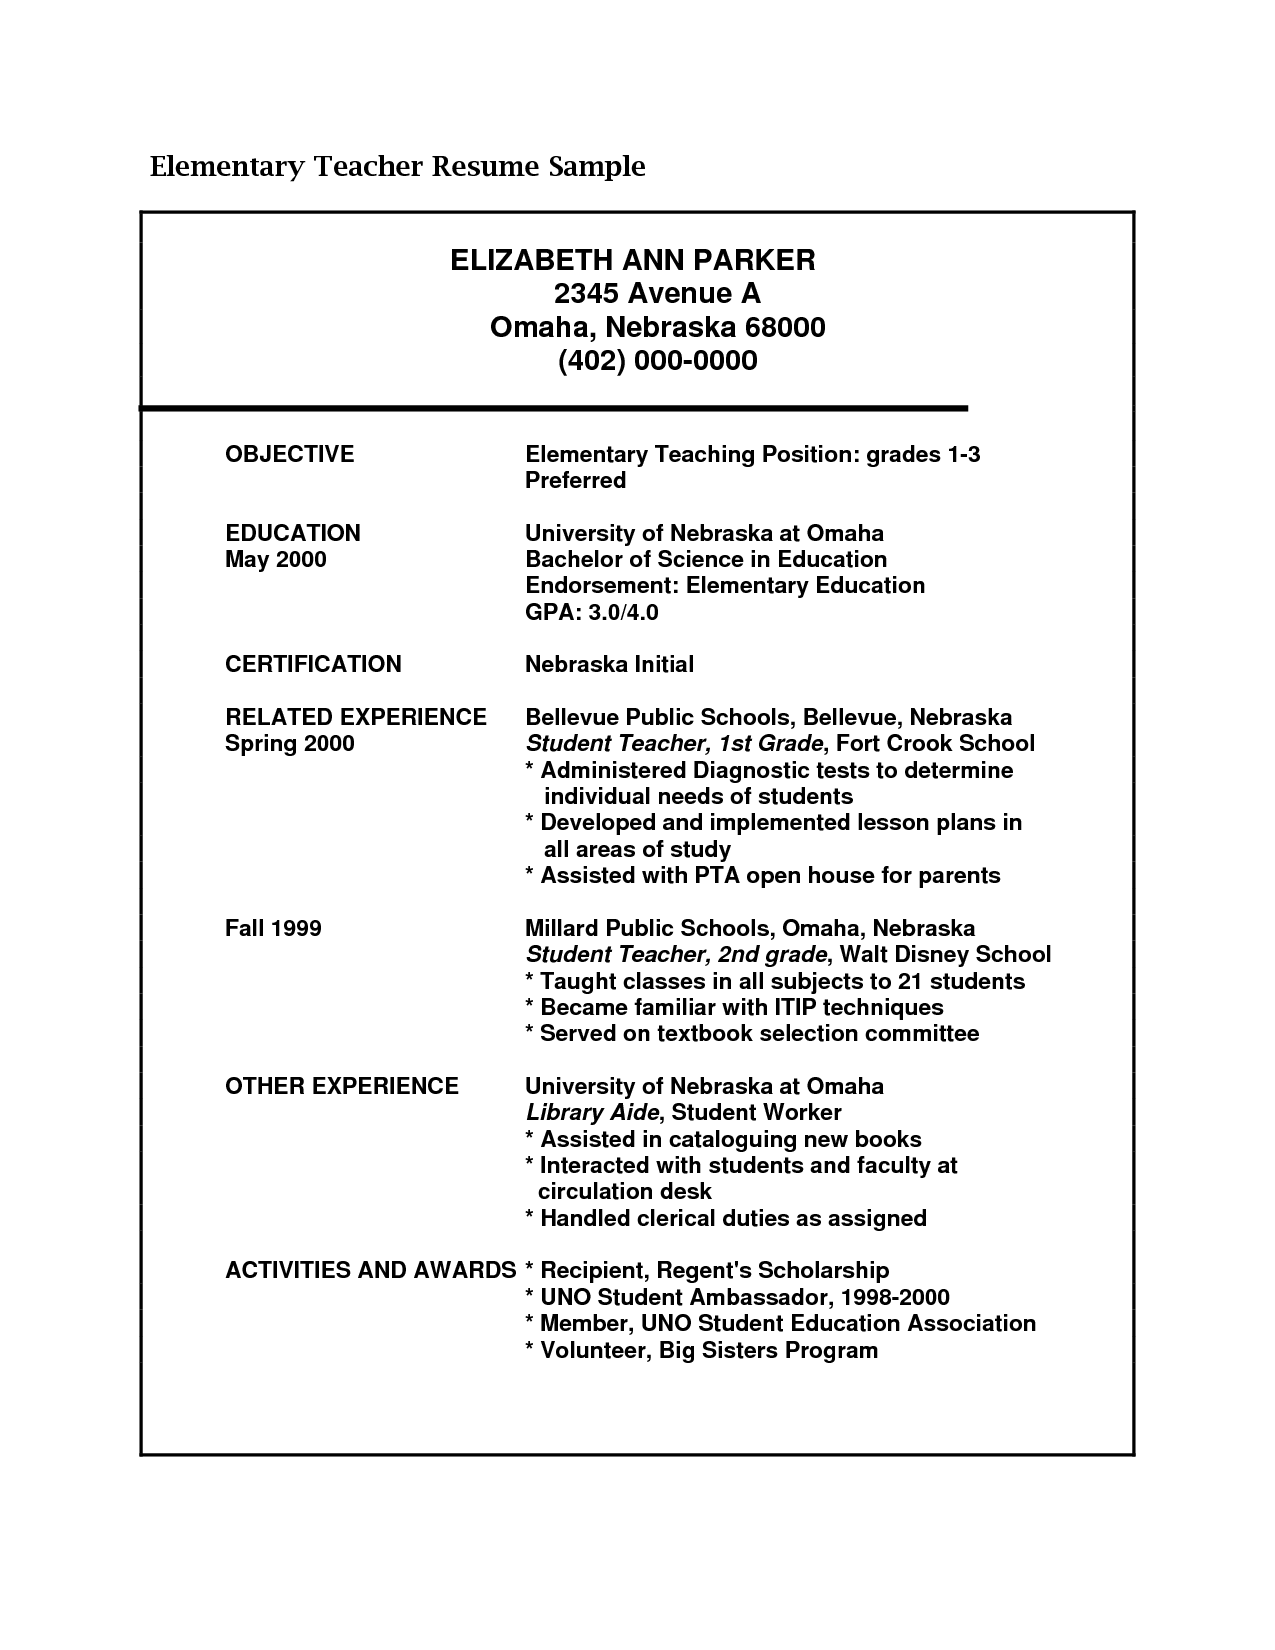 admin teacher resume exampleselementary teacher resume exampleshigh school teacher resume examplespreschool teacher resume examplesspecial education